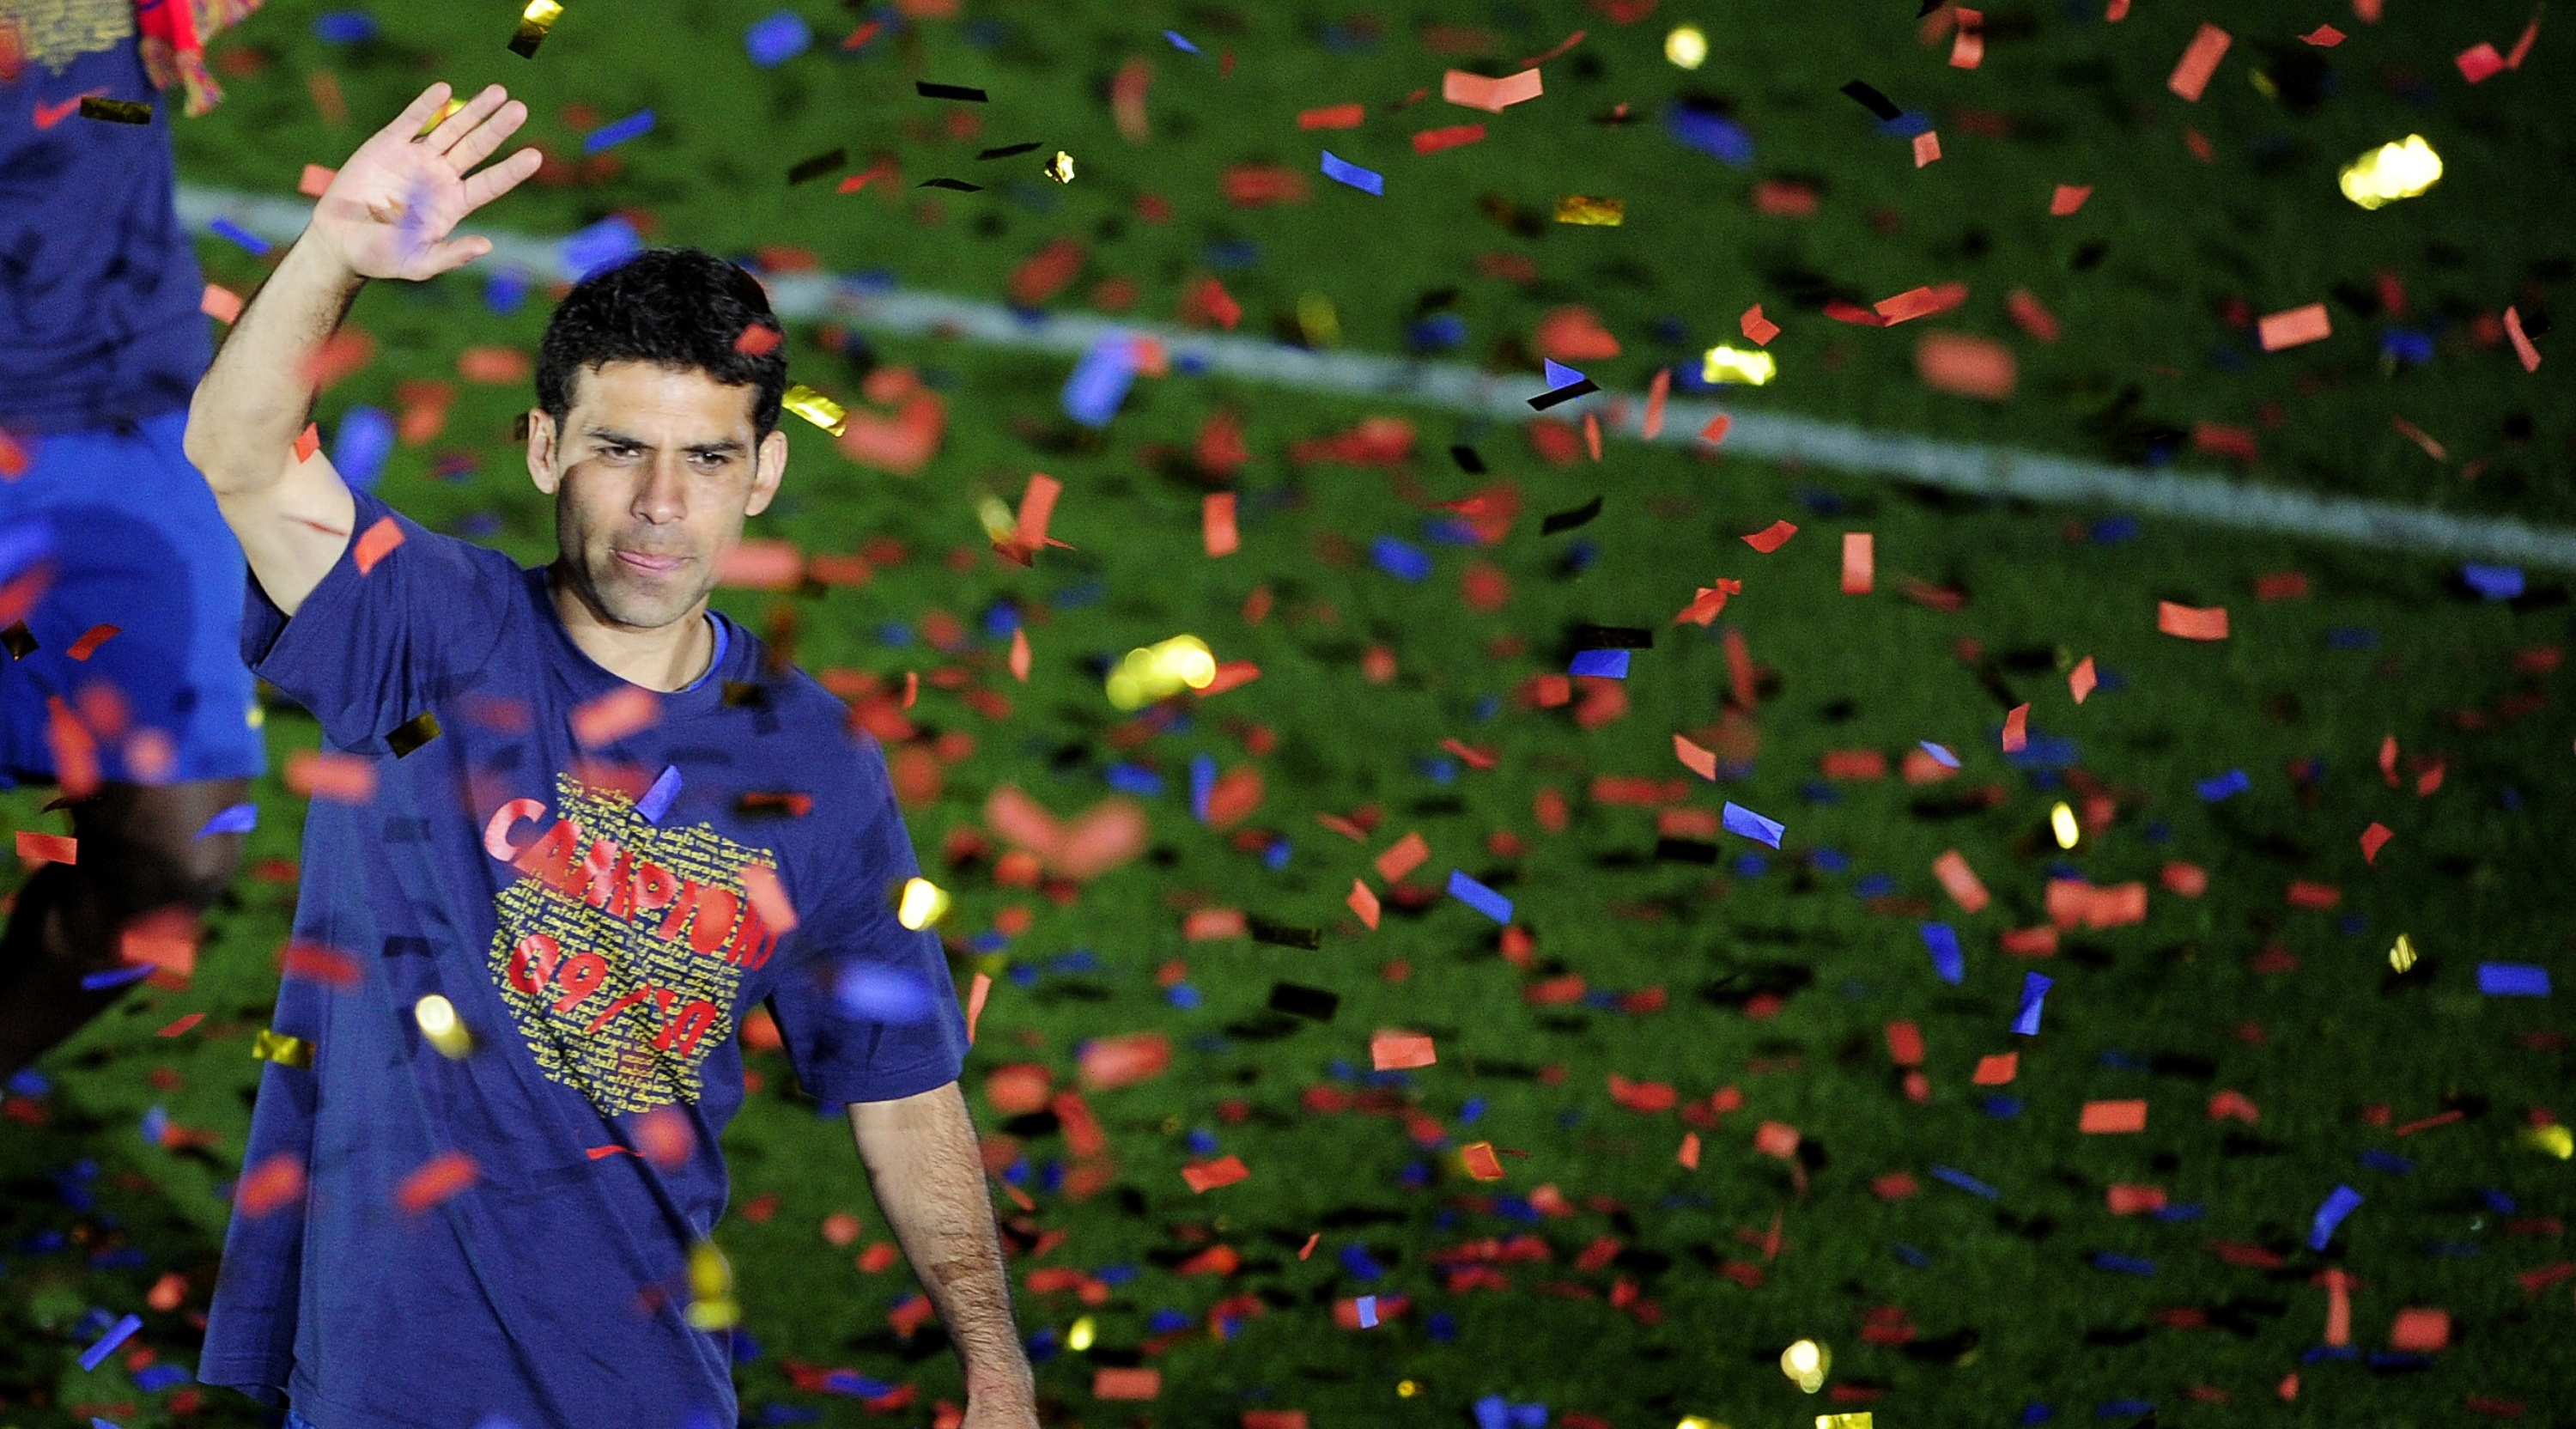 Barcelona's Mexican defender Rafa Marquez celebrates after winning the Spanish La Liga title at Camp Nou stadium in Barcelona on May 16, 2010. Barcelona retained the Spanish La Liga title on the final day of the 2009/10 season with a 4-0 win over Valladolid at Camp Nou on Sunday to finish above arch rivals Real Madrid. AFP PHOTO / JOSEP LAGO (Photo credit should read JOSEP LAGO/AFP/Getty Images)